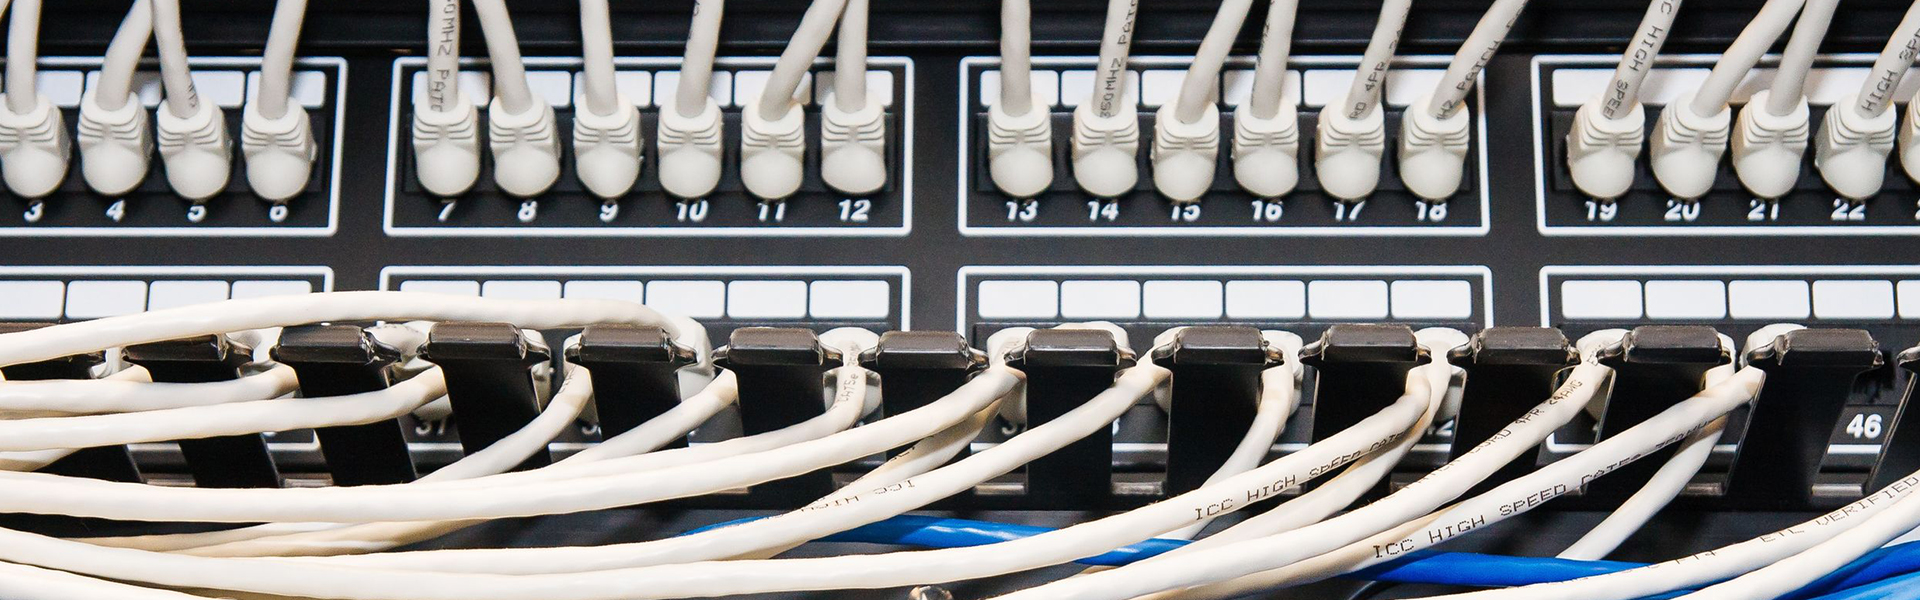 Structured Data Cabling